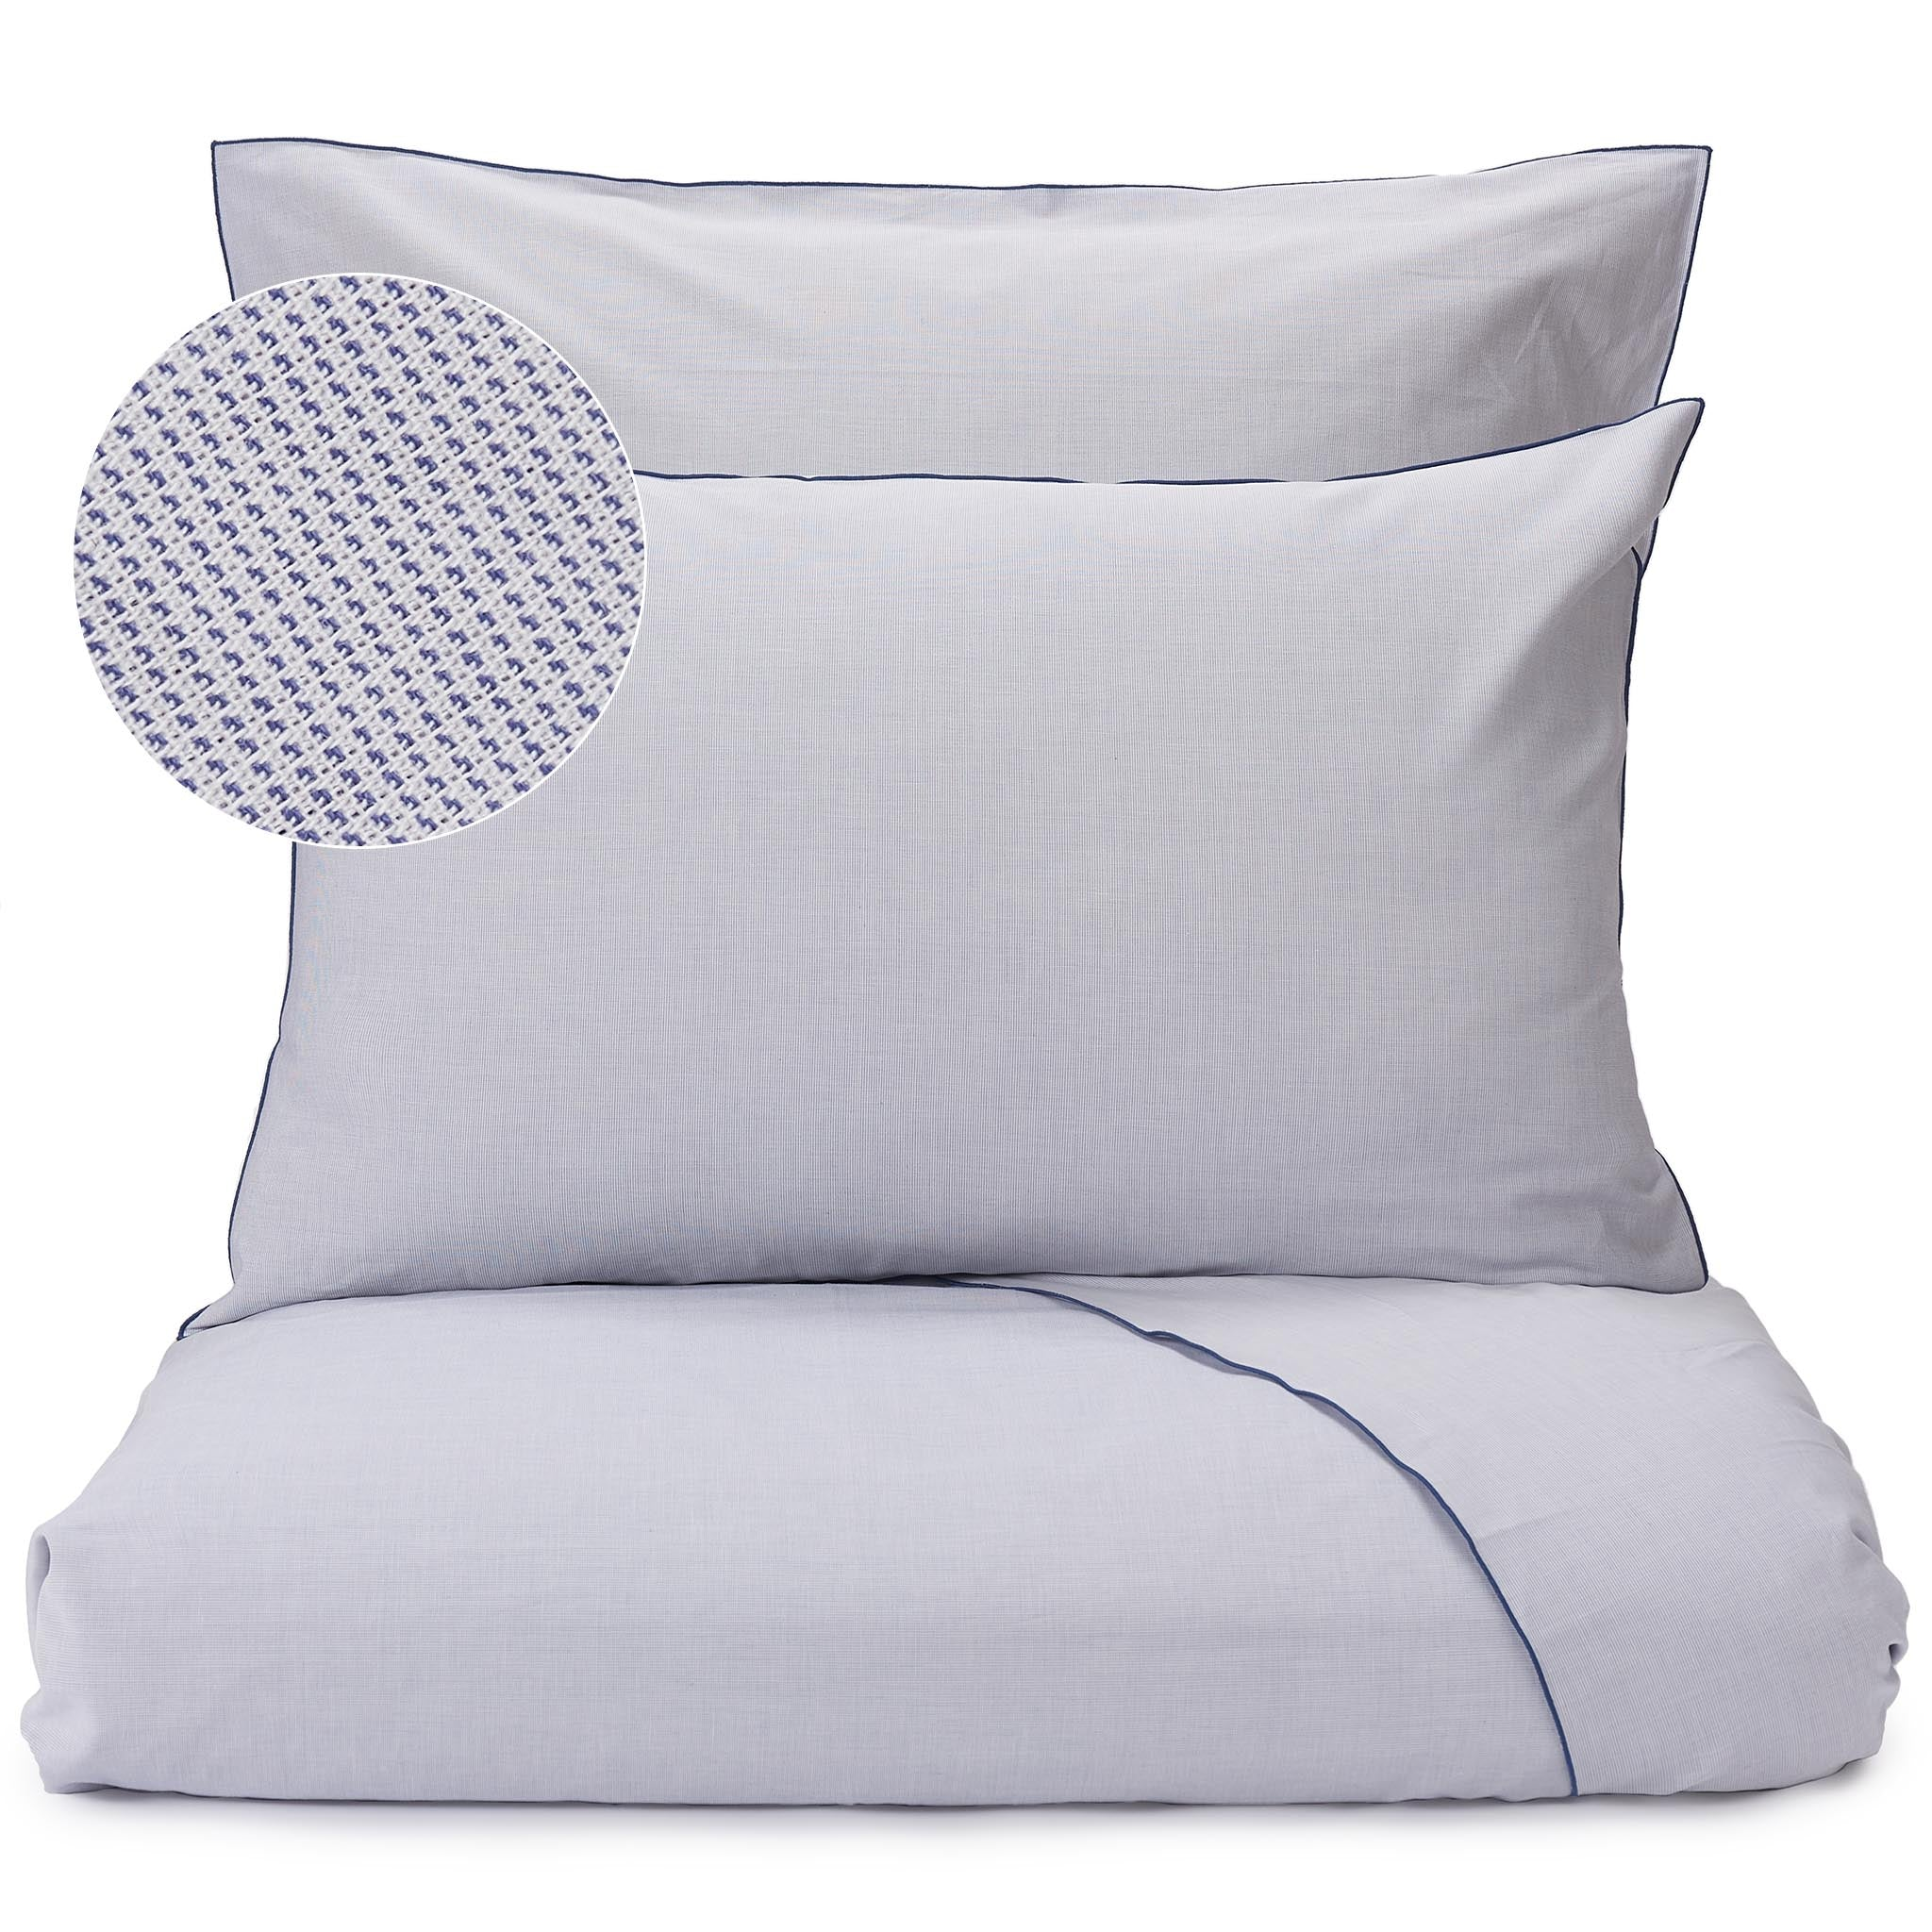 Sousa Bed Linen blue & white, 100% cotton